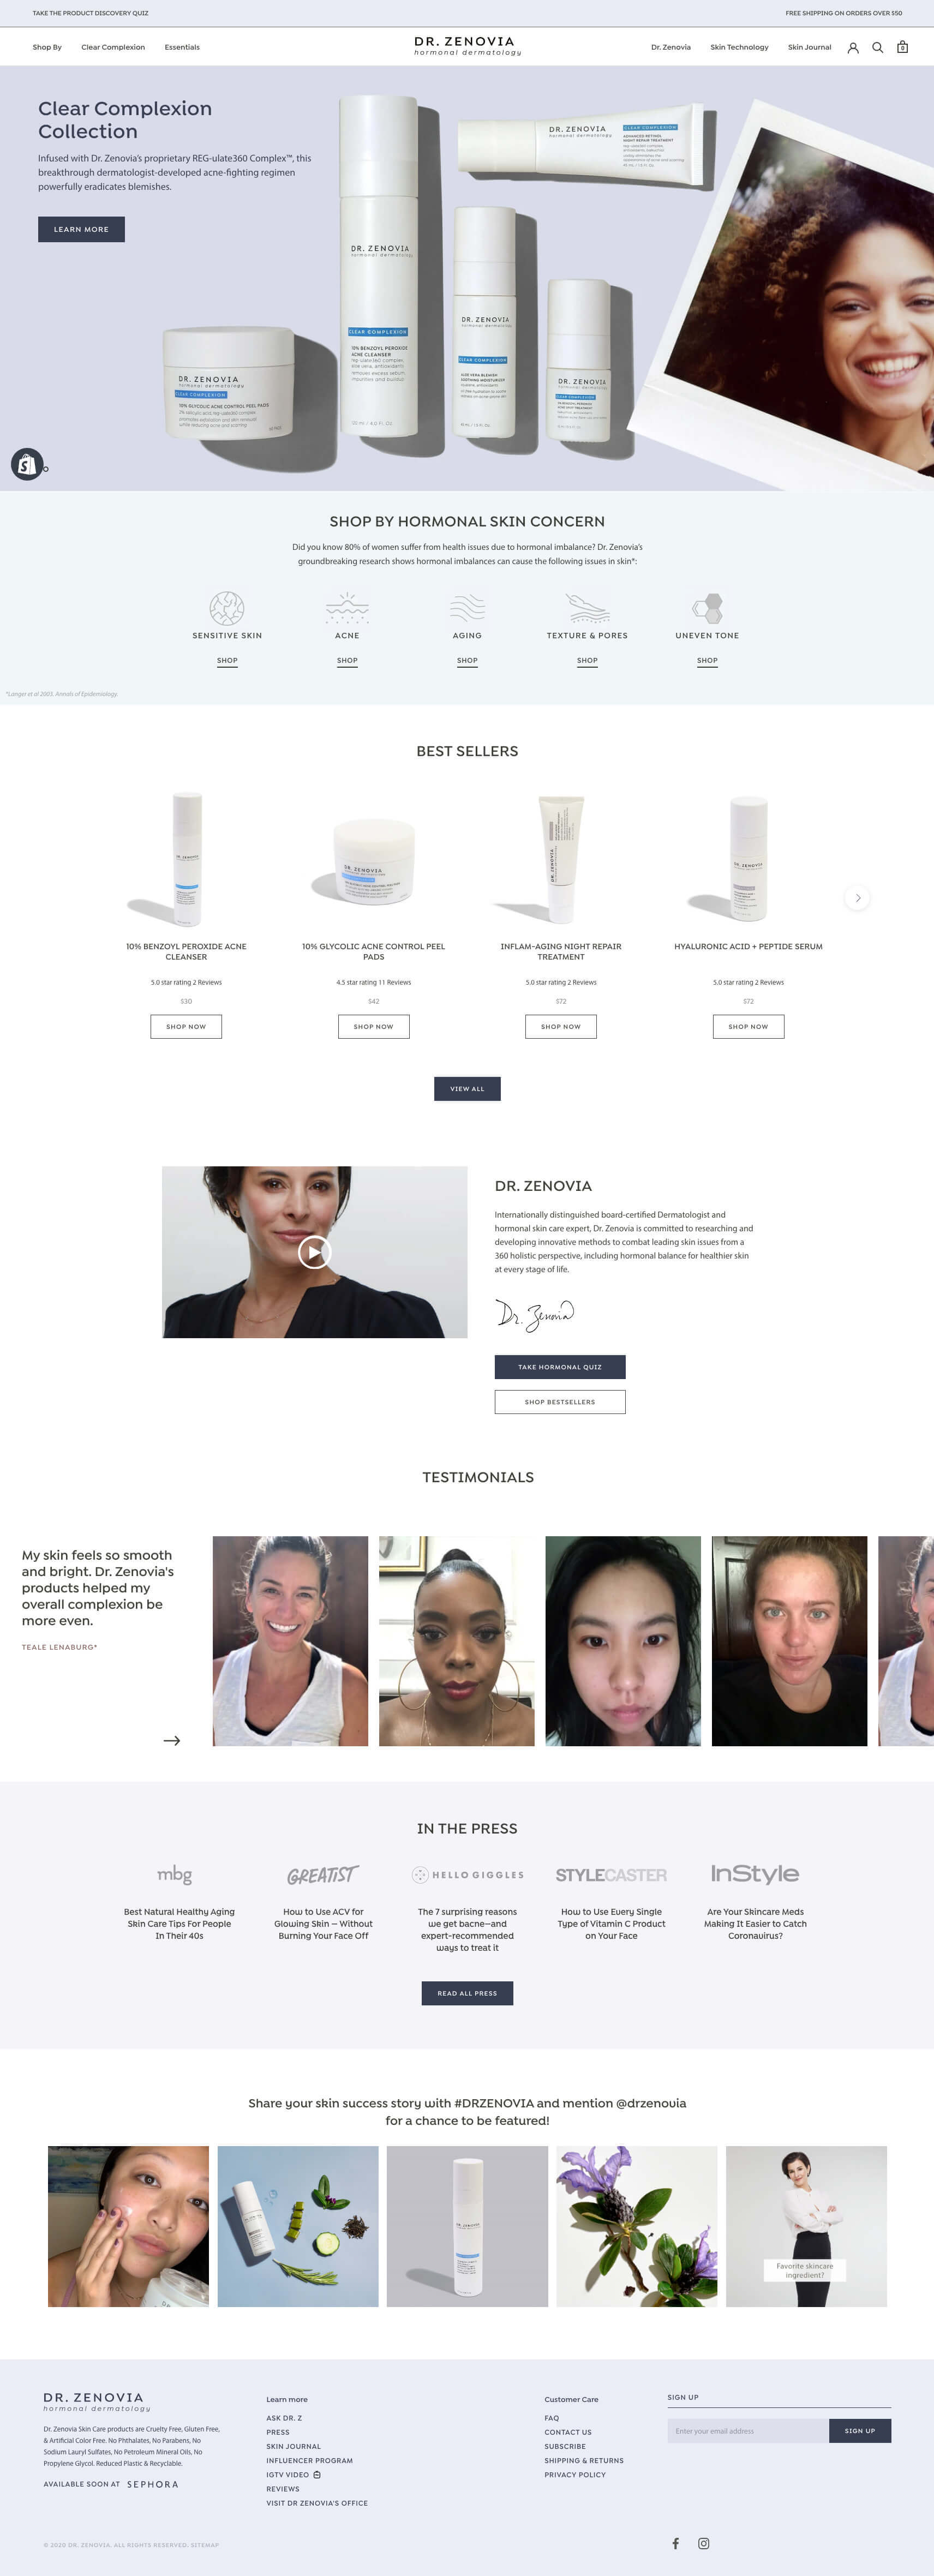 Thumbnail for Shopify Plus website for skin care expert